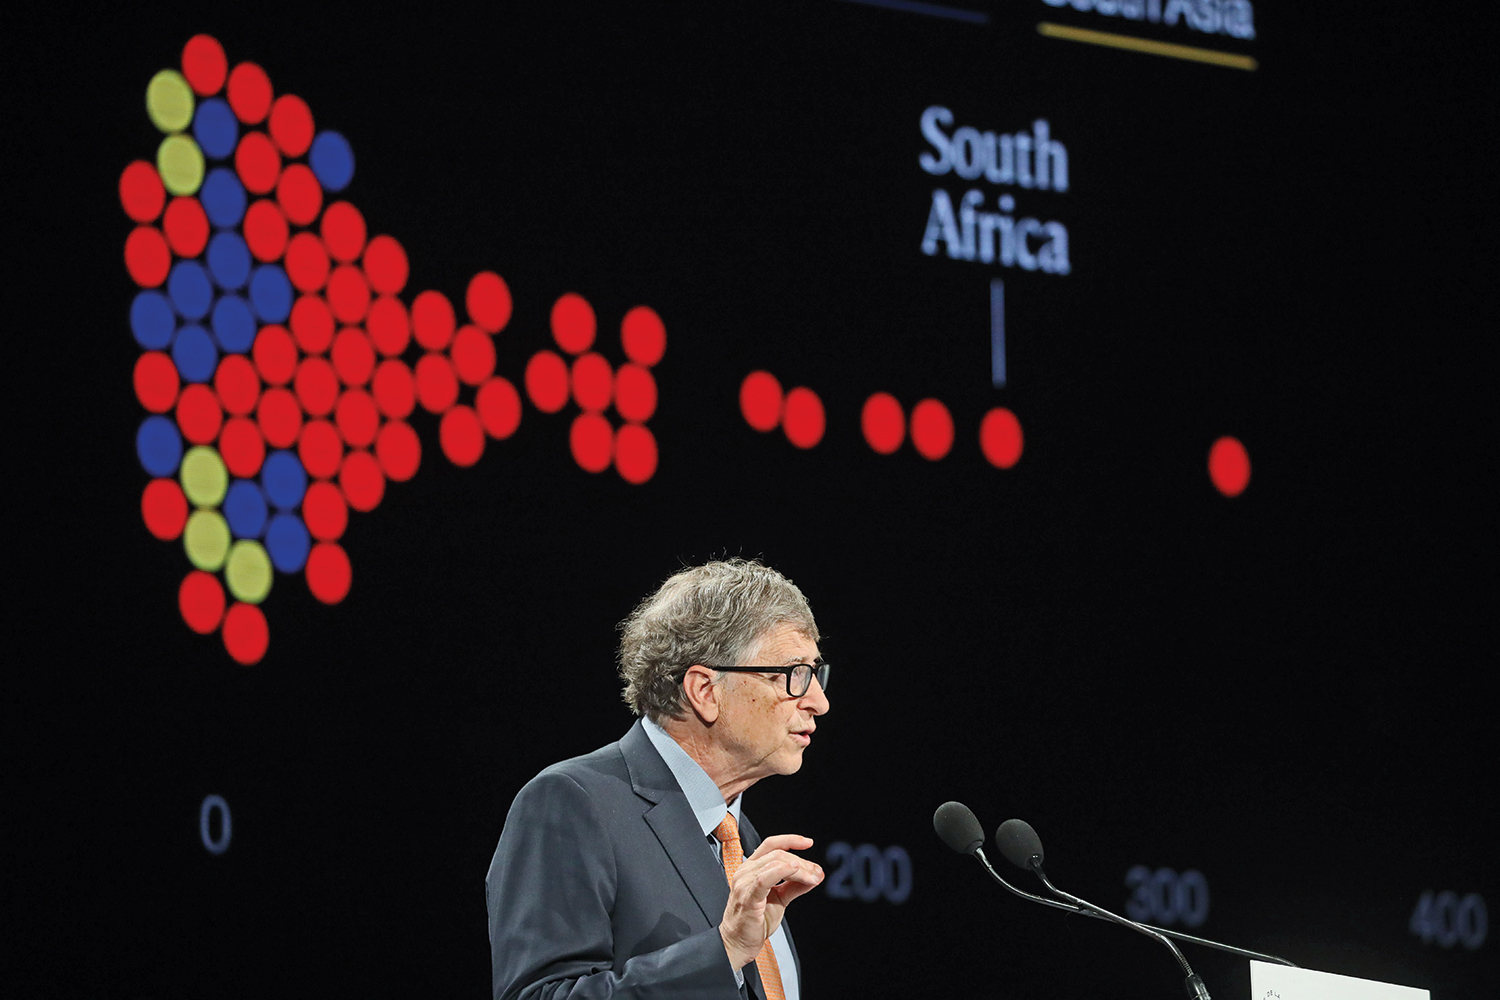 Microsoft co-founder Bill Gates speaks at the conference for the Global Fund to Fight AIDS, Tuberculosis and Malaria in Lyon, France, on Oct. 10, 2019.